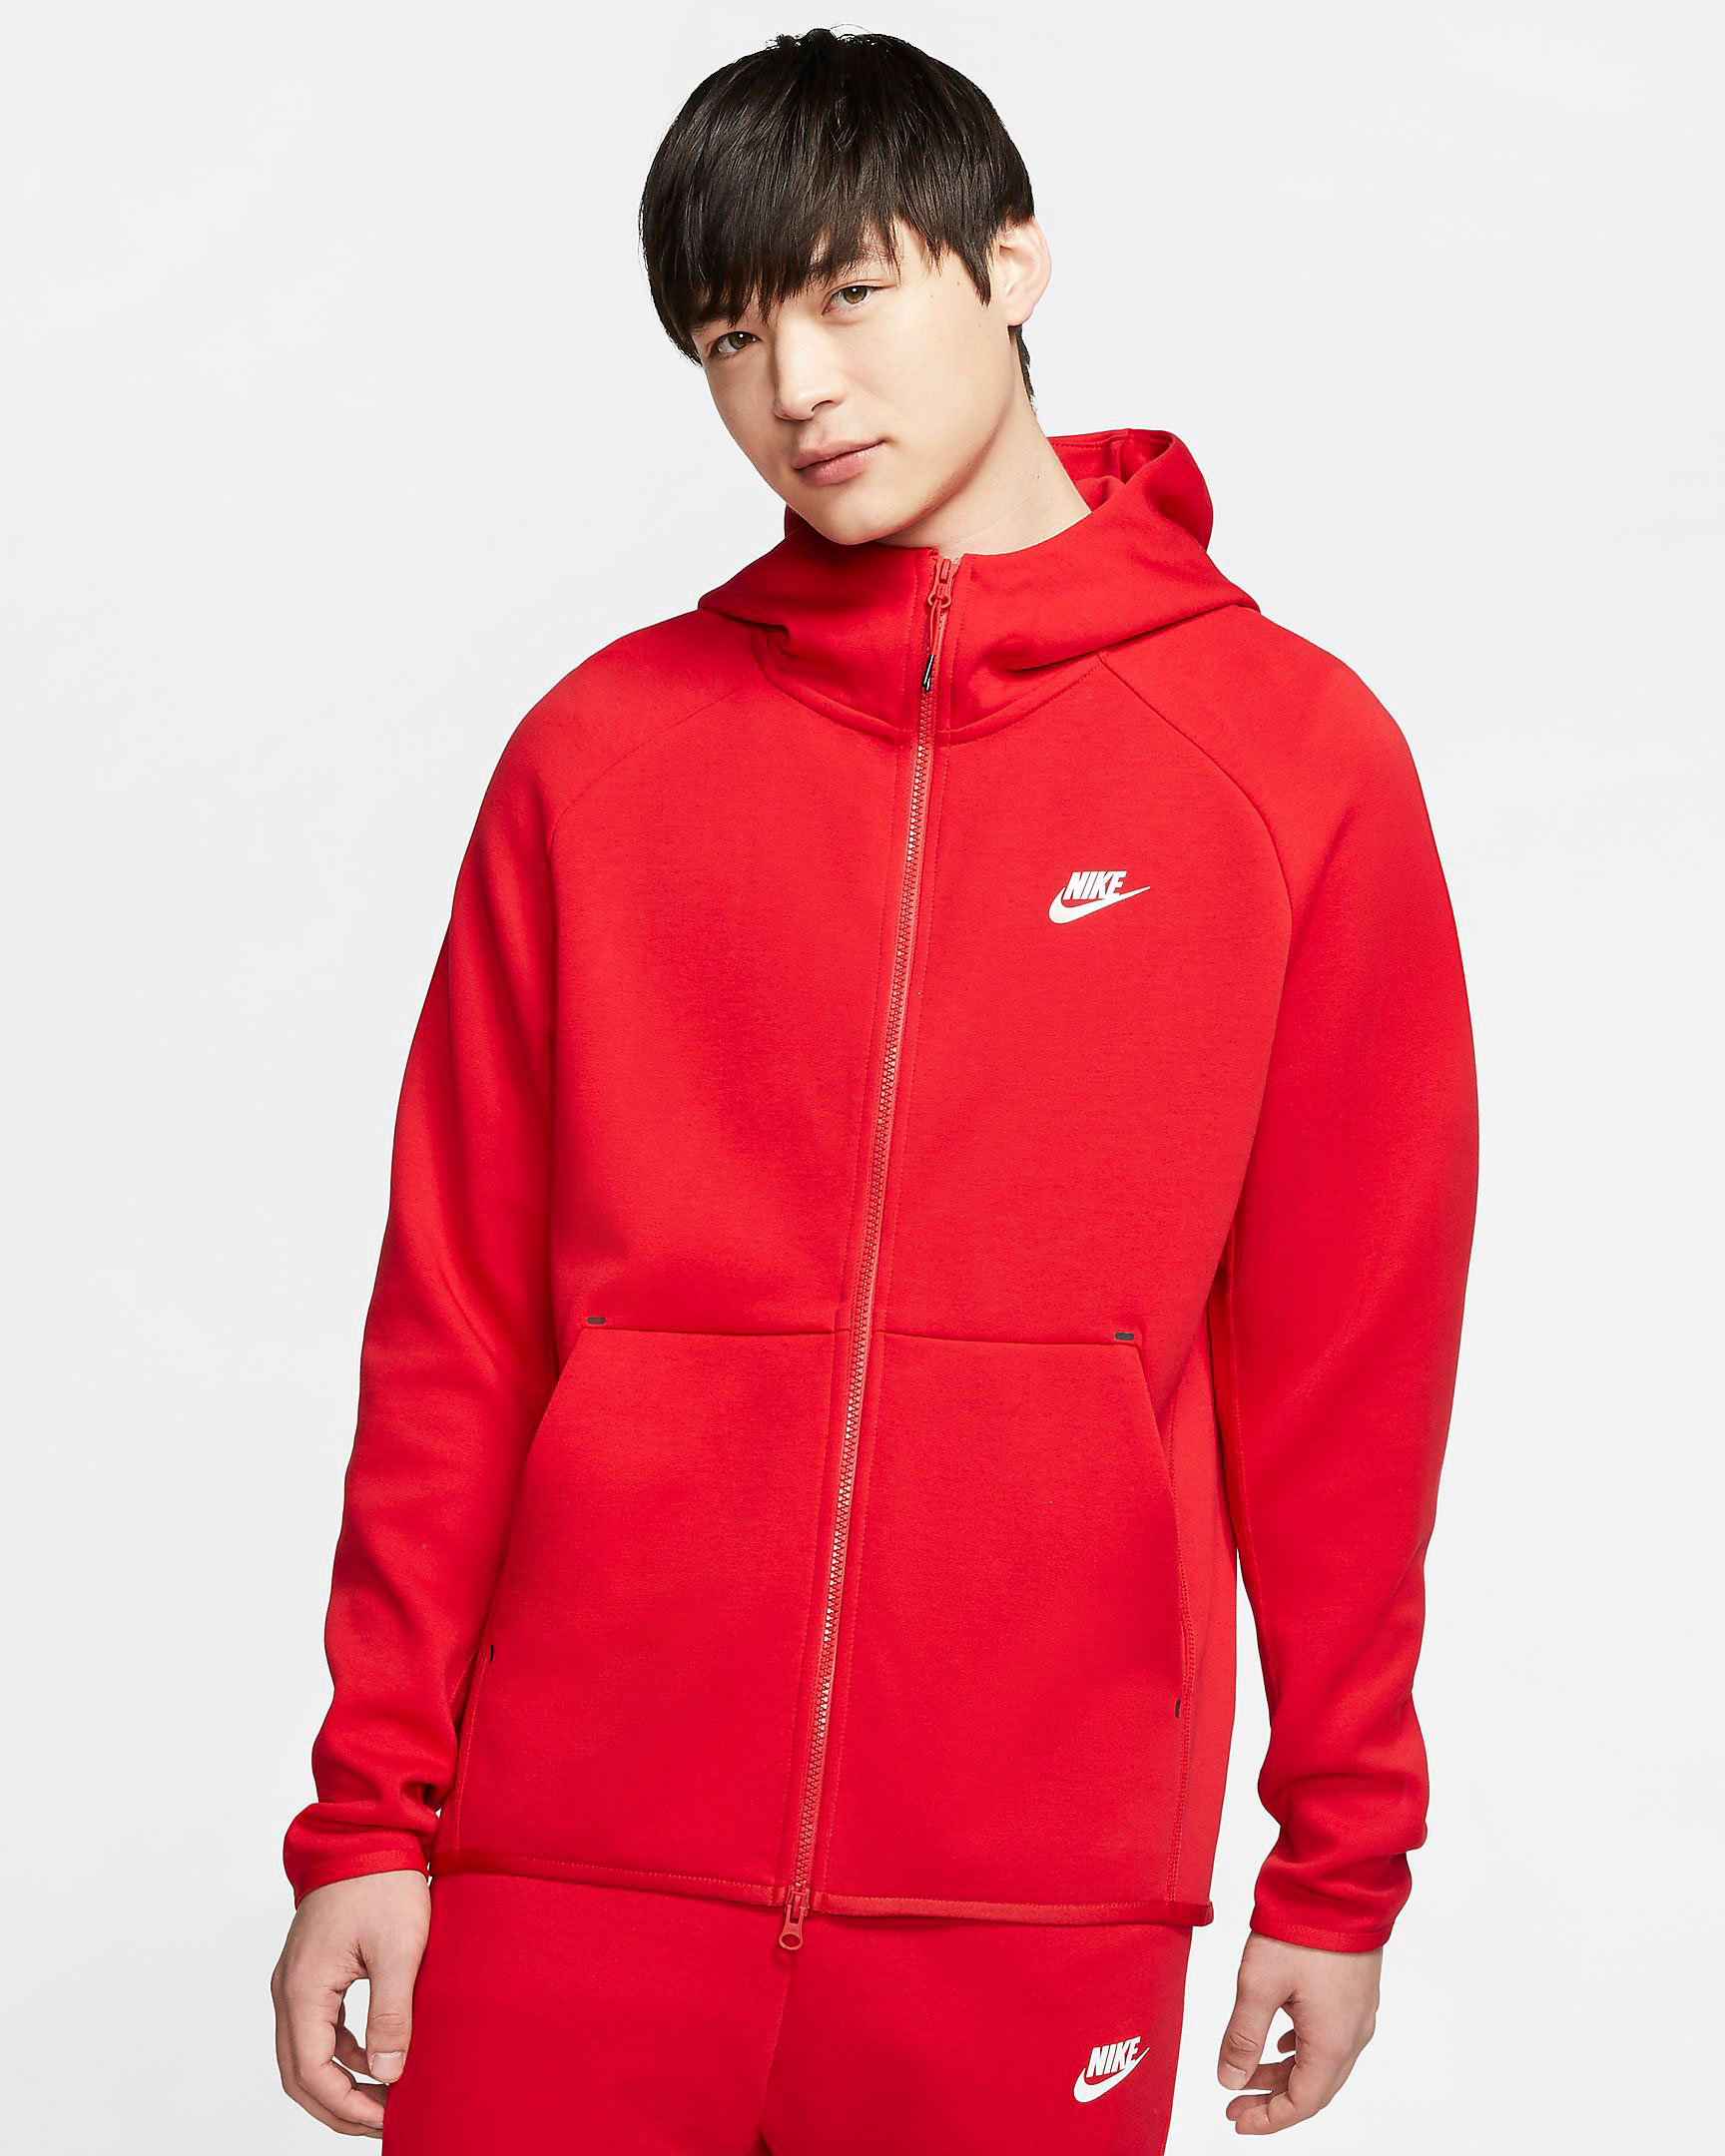 nike-red-tech-fleece-hoodie